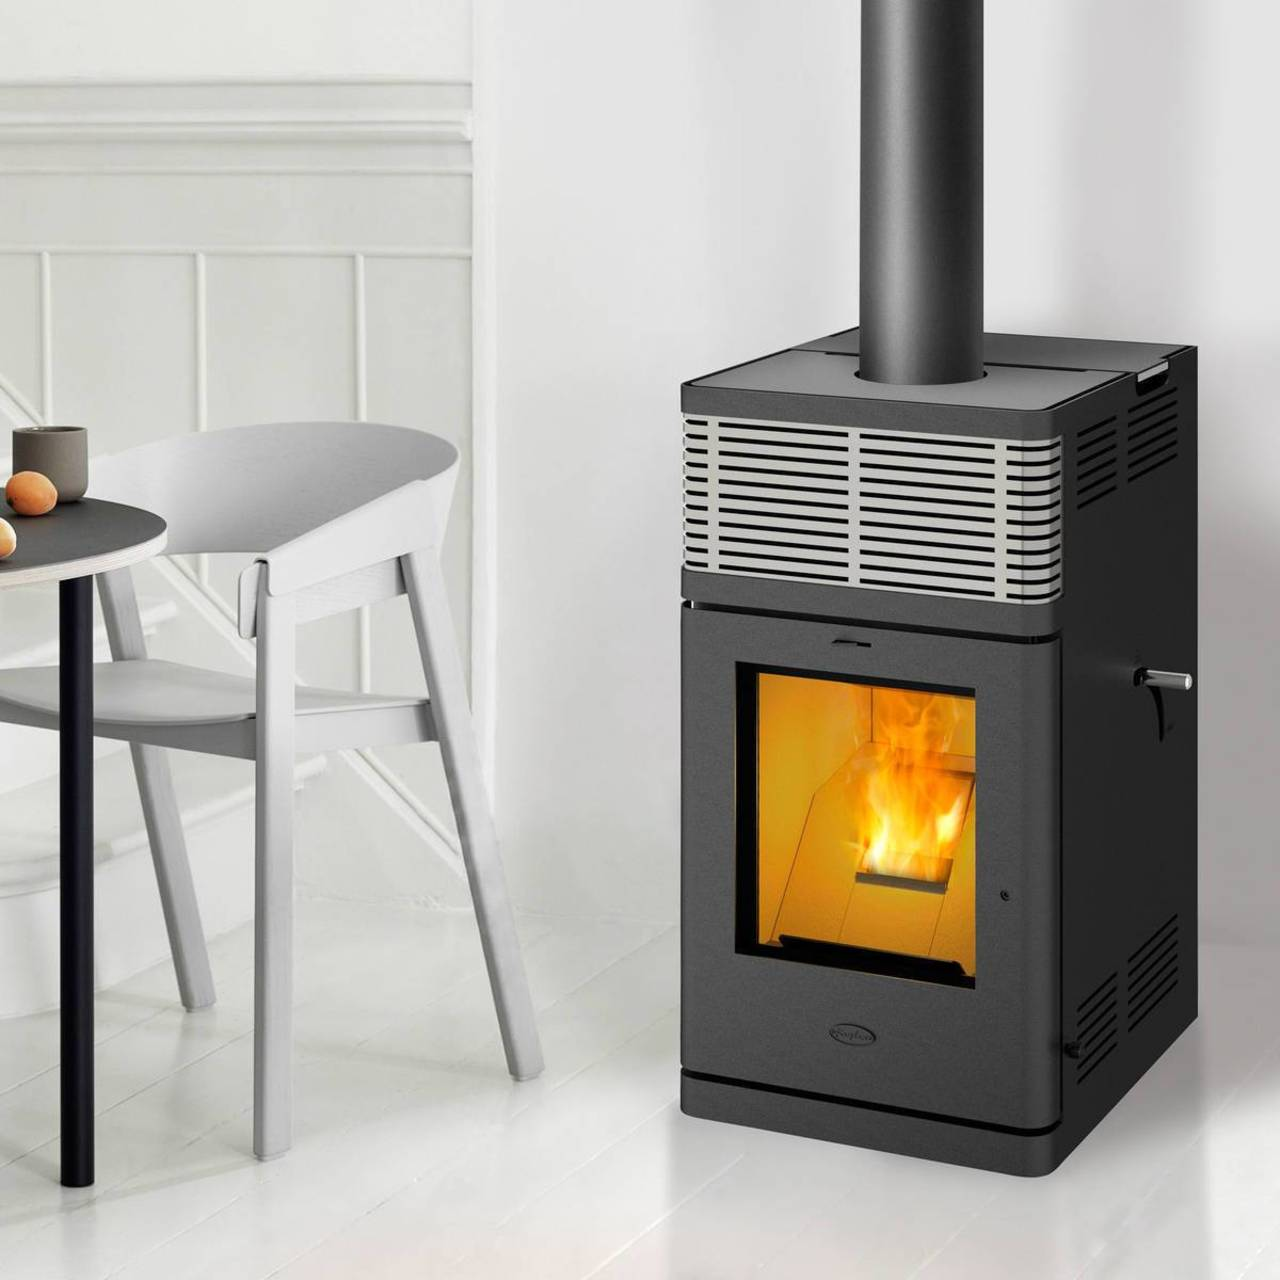 fireplace pelletofen gravio 8 kw strom u ger uschlos ofen kamin pellet ebay. Black Bedroom Furniture Sets. Home Design Ideas